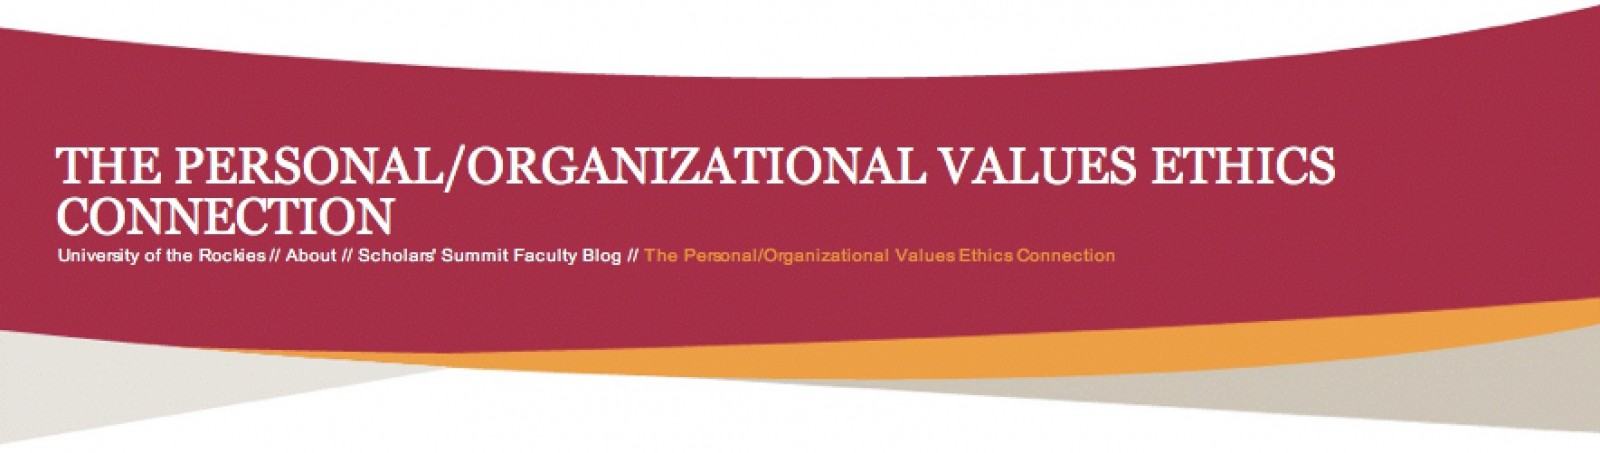 THE PERSONAL/ORGANIZATIONAL VALUES ETHICS CONNECTION